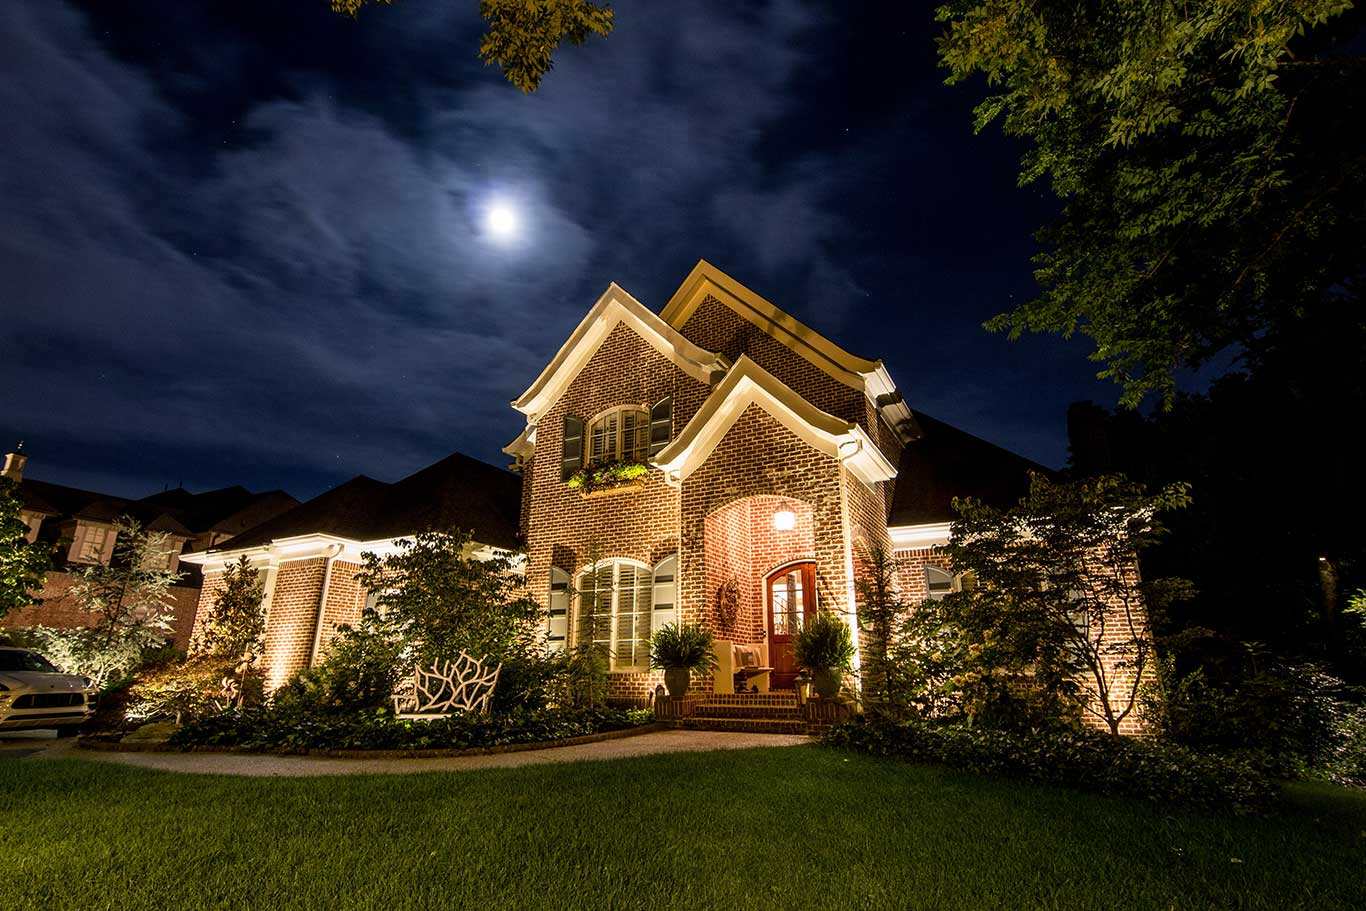 Landscape and architectural lighting on home in Nashville, TN